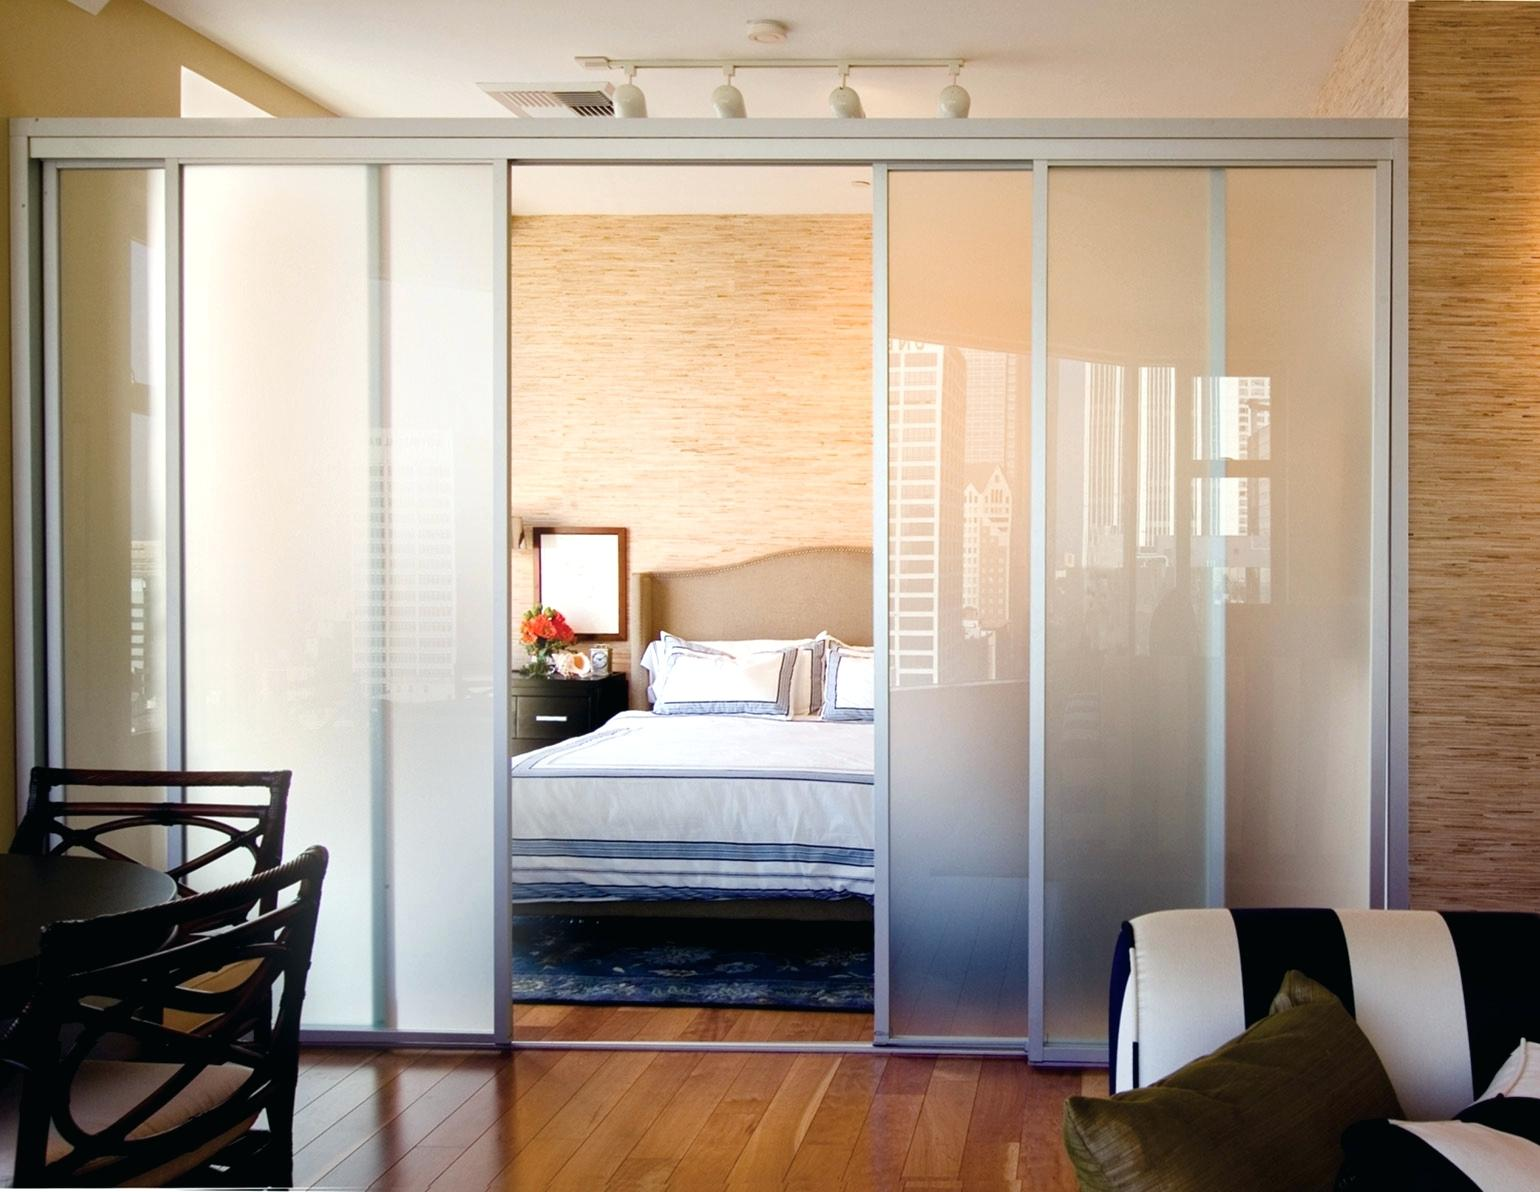 Enchanting Room Divider Curtains for Your Space Room Ideas: Hanging Curtain Room Divider Ideas | Room Divider Curtains | Curtain Room Dividers